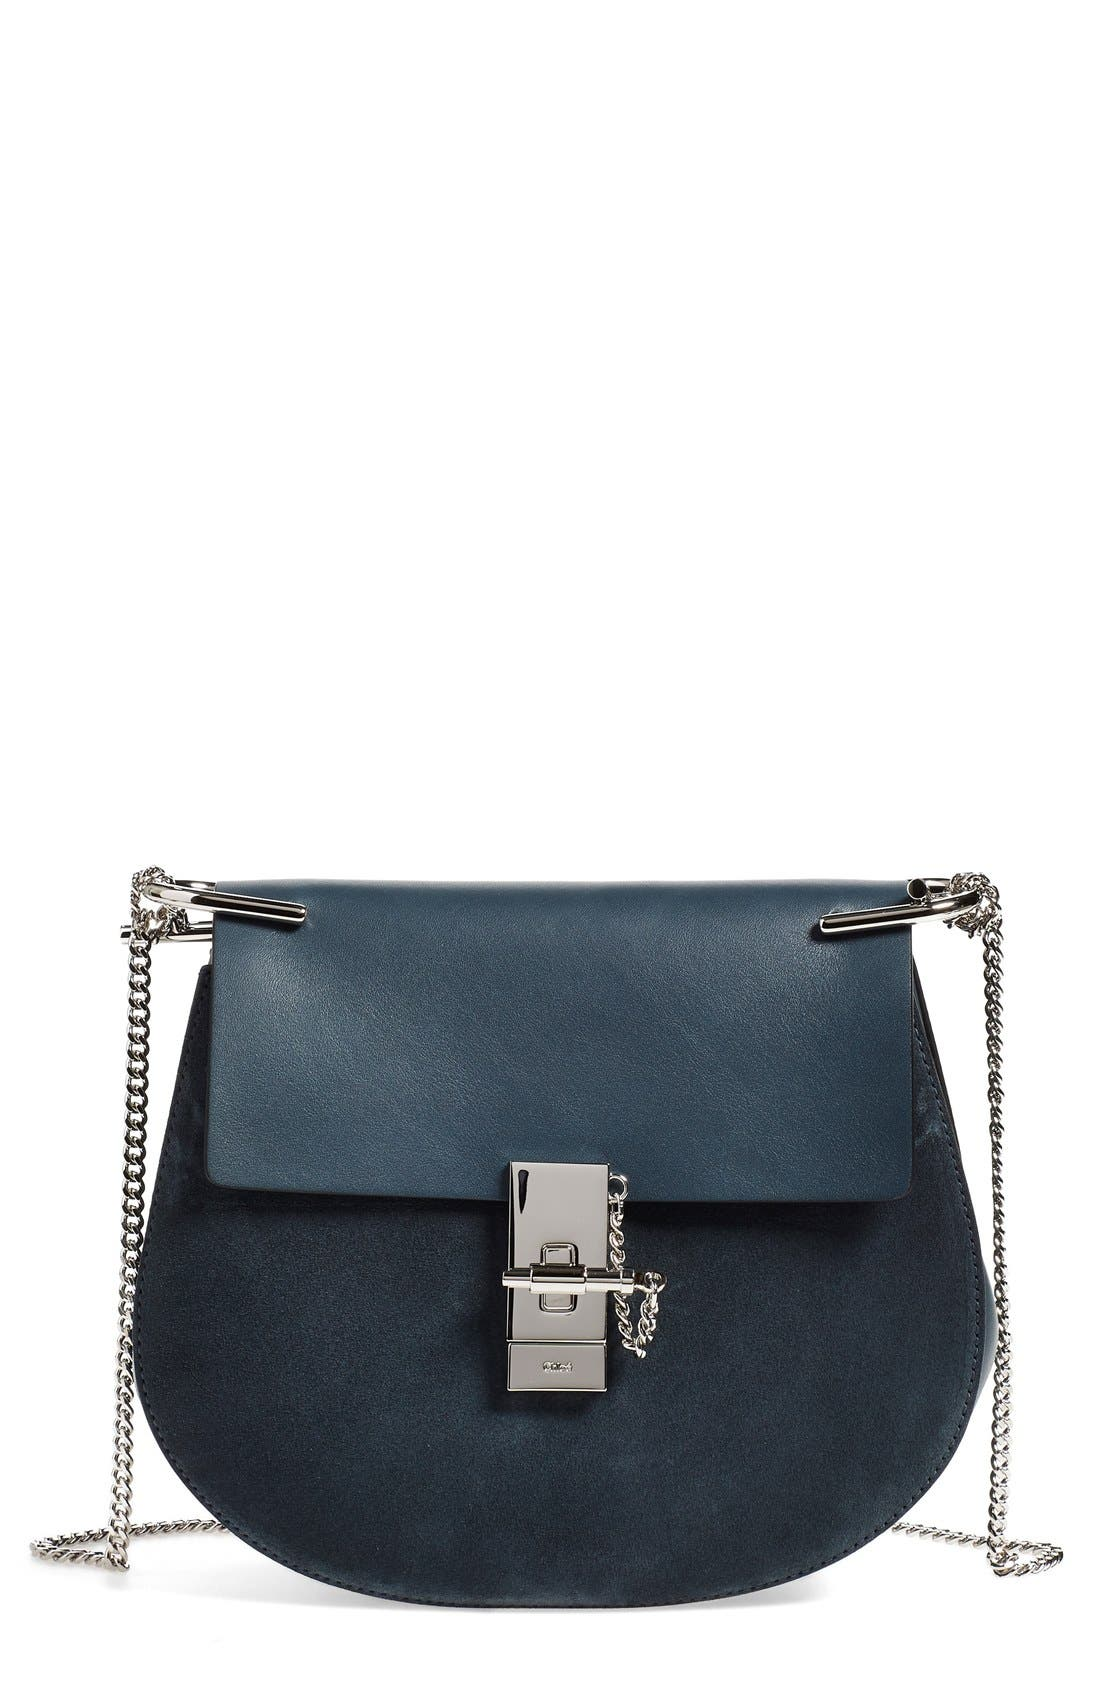 Main Image - Chloé Small Drew Leather & Suede Shoulder Bag